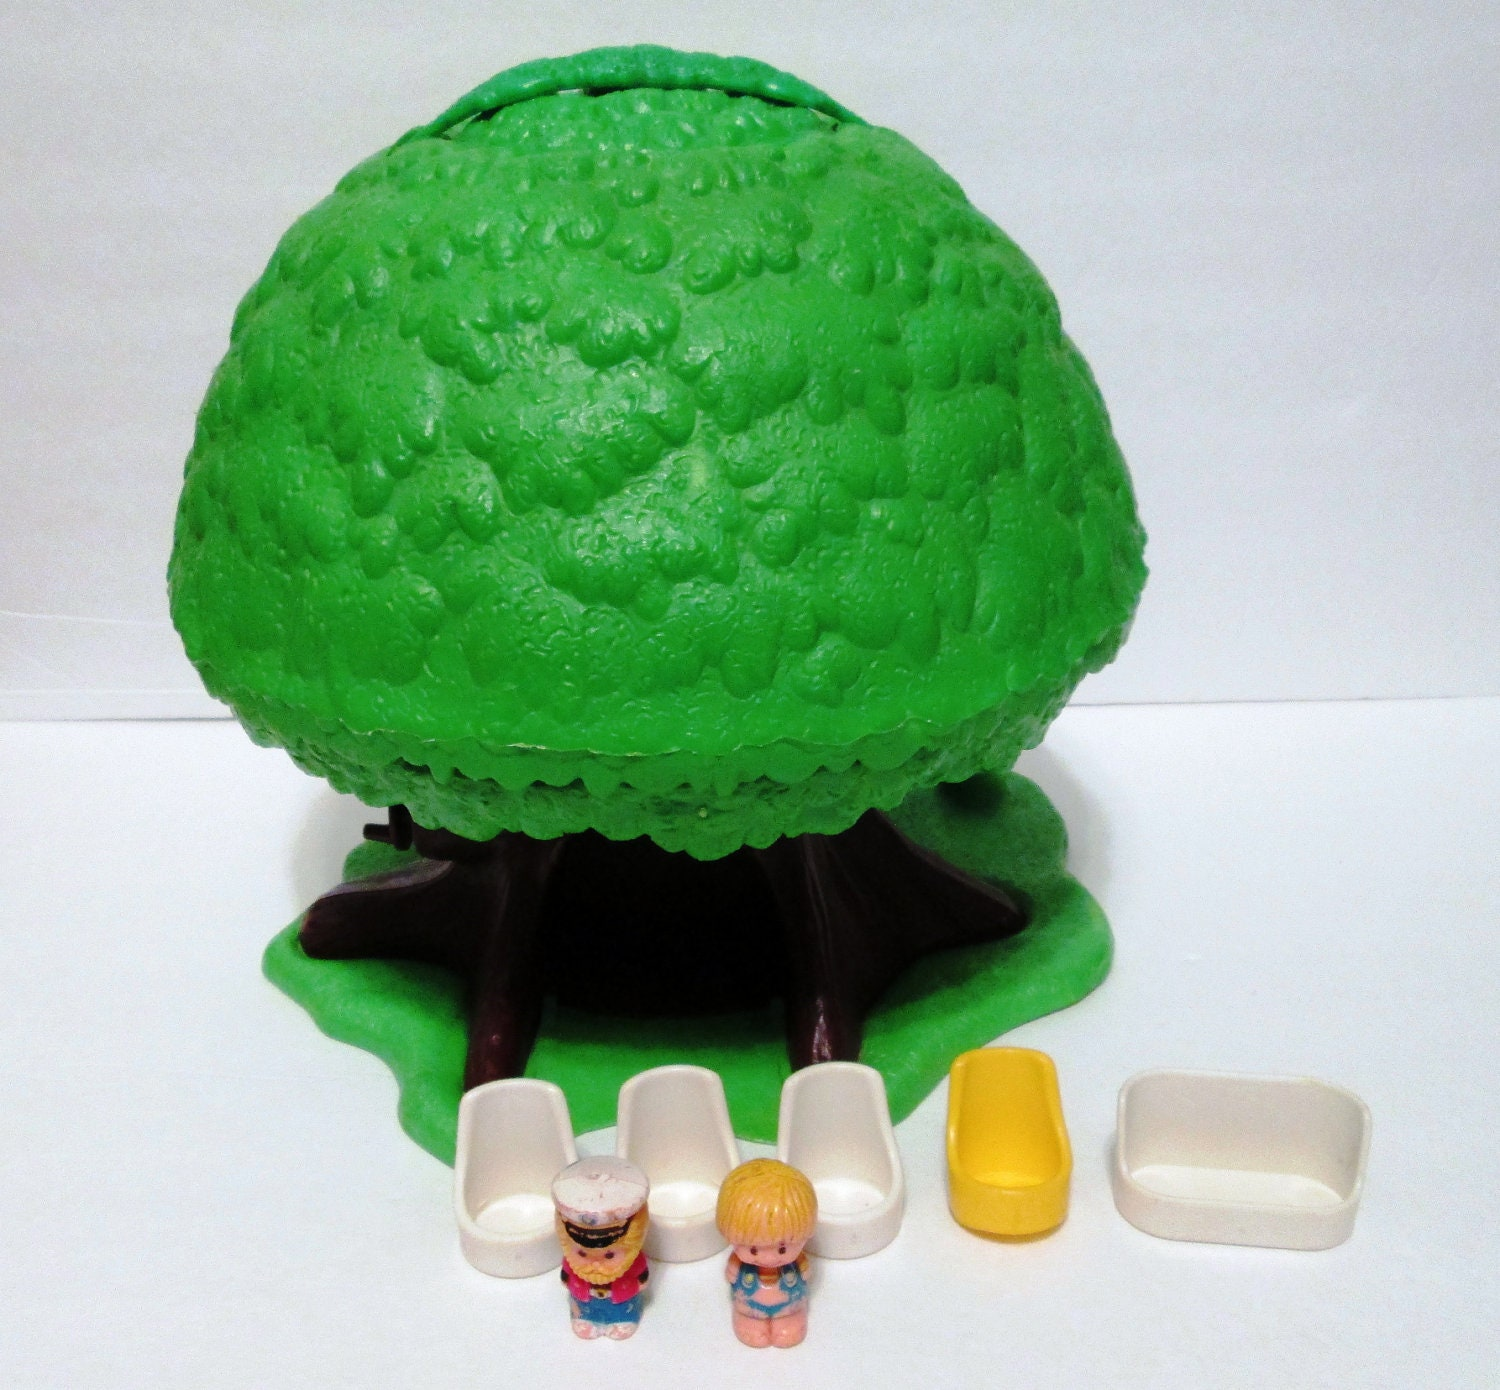 Tlc Vintage Toy 1970s Kenner Tree Tots Family By